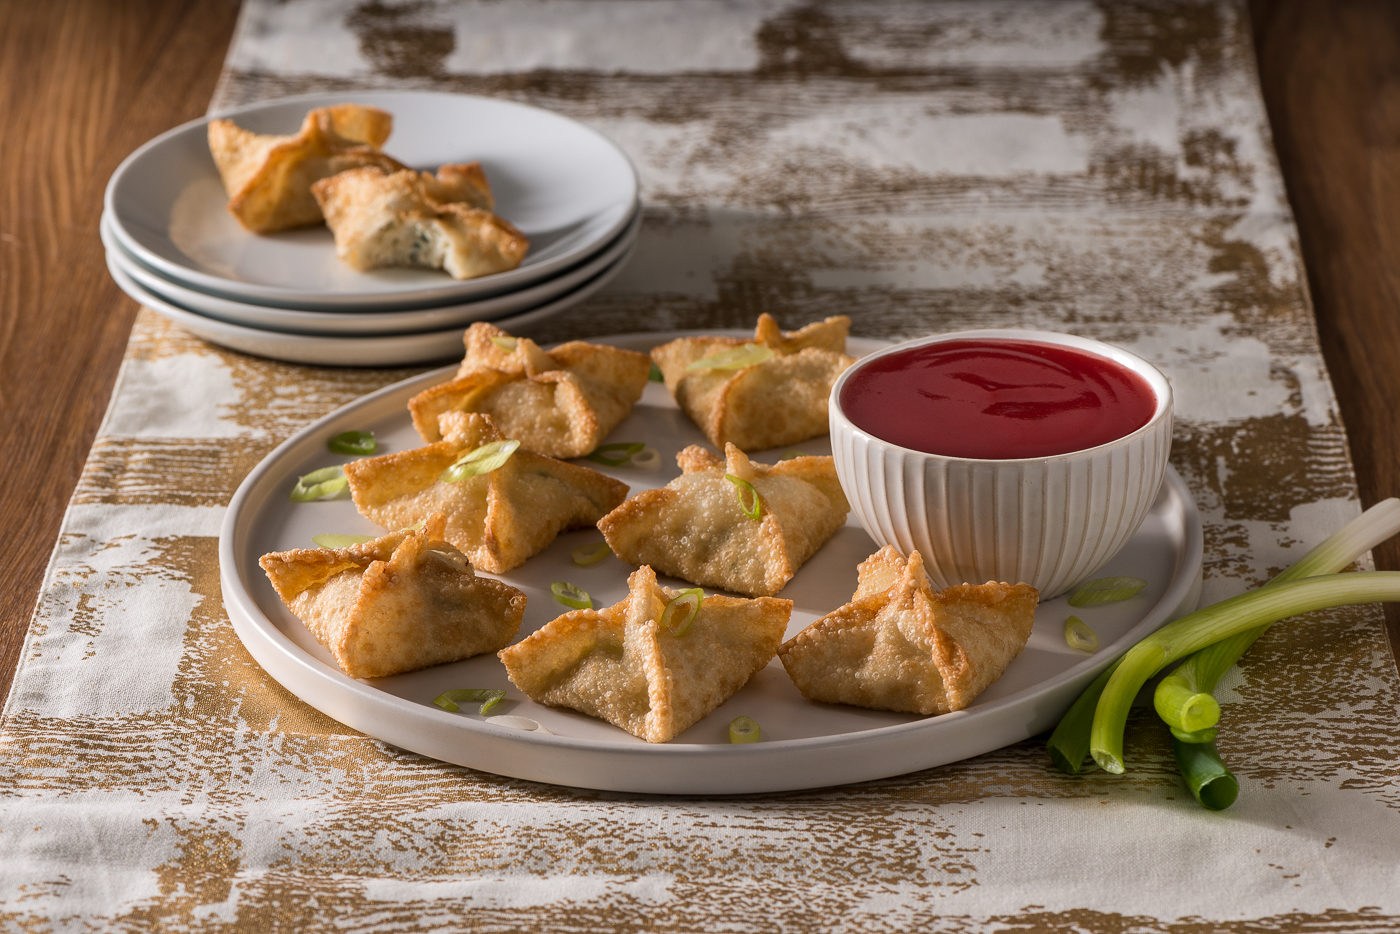 Fun to make and fun to eat, this classic appetizer is definitely a real crowd-pleaser.